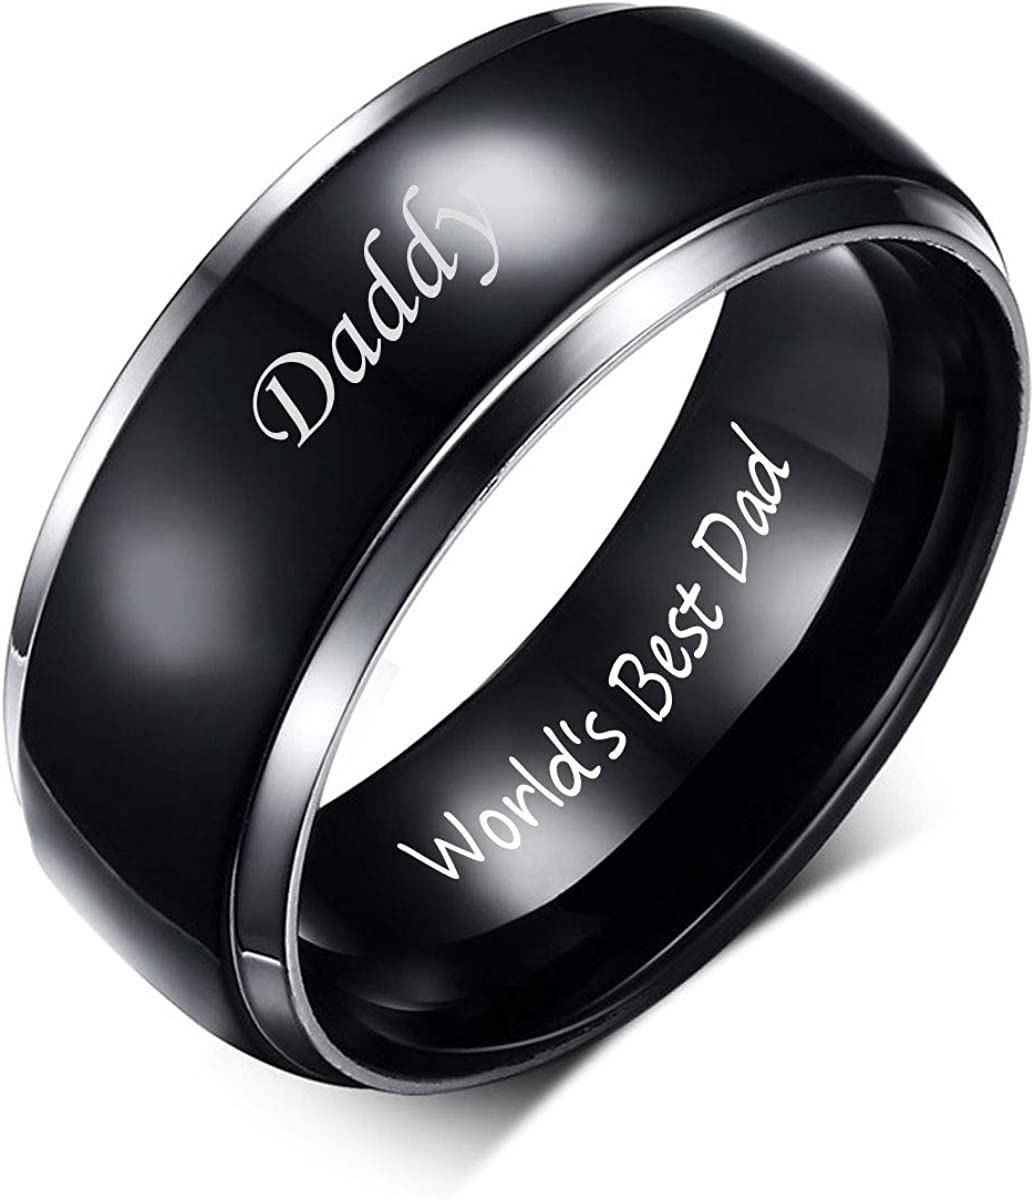 VNOX Titanium Ring Daddy World's Best Dad Engraved Personalized Wedding Bands Rings Birthday Gift for Men Dad,Size 6-13